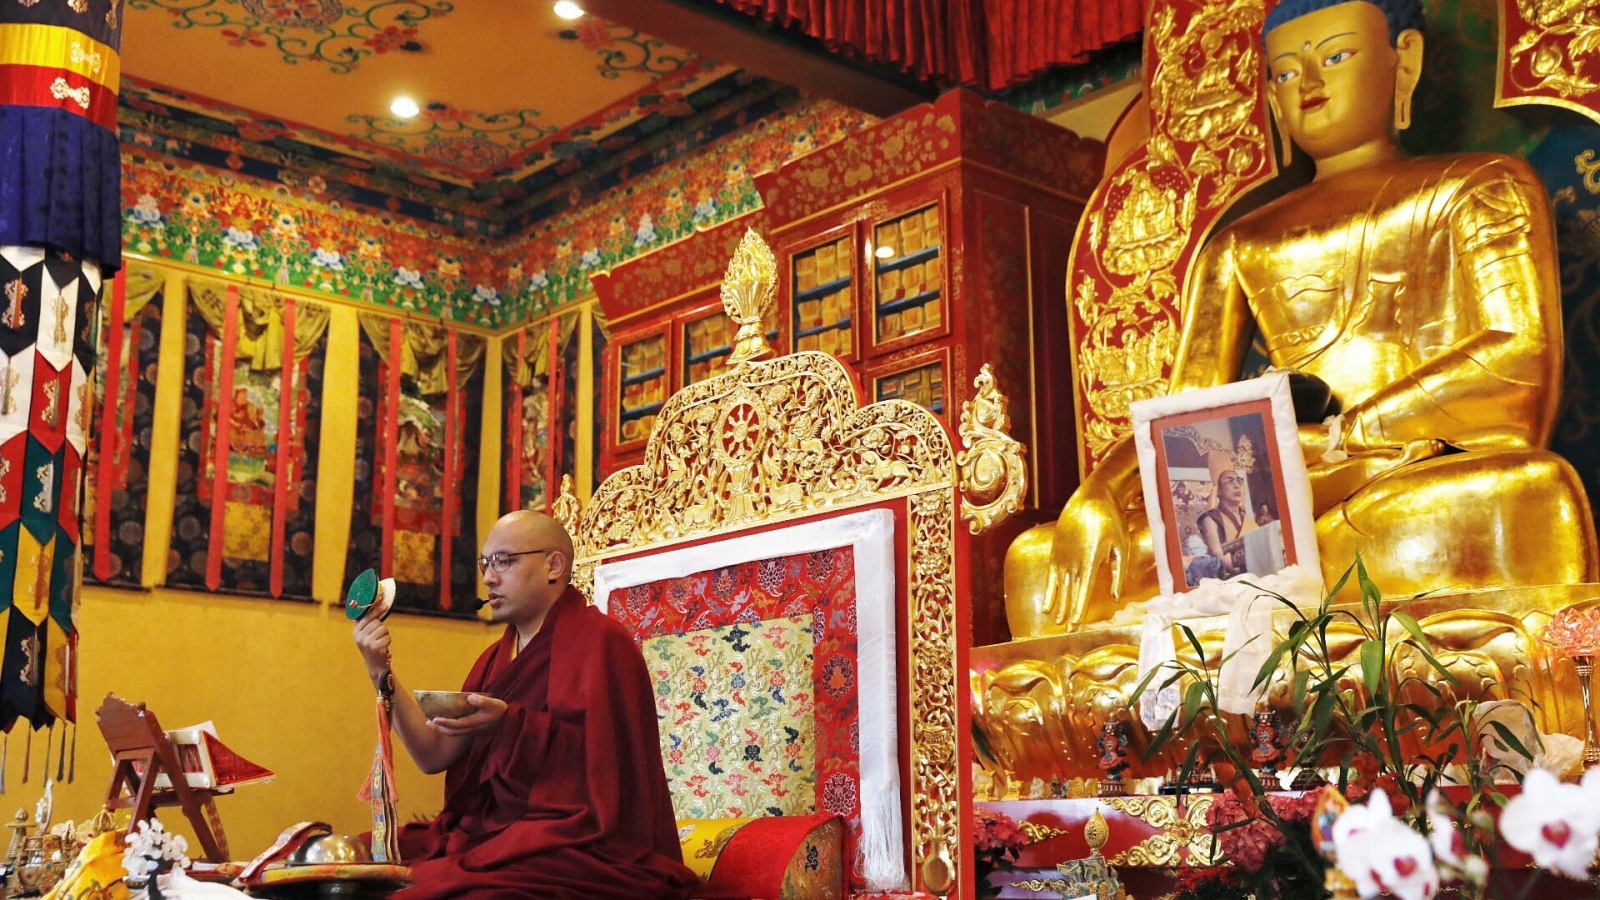 Karmapa playing drum